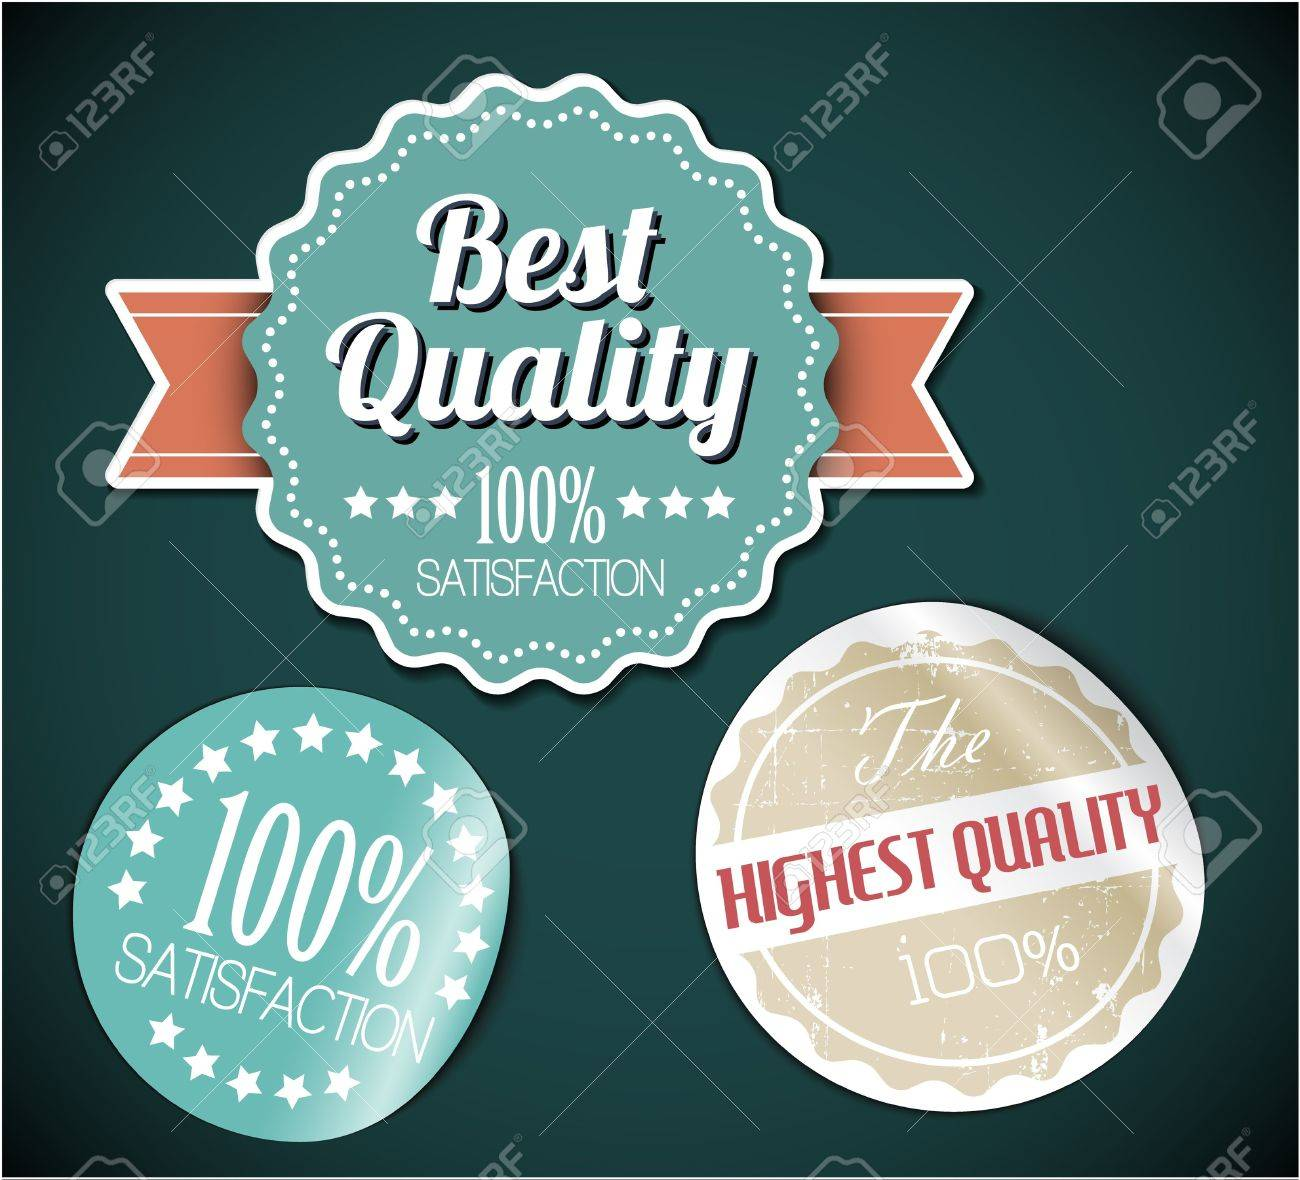 Old vector round retro vintage grunge stickers - best quality Stock Vector - 13129296